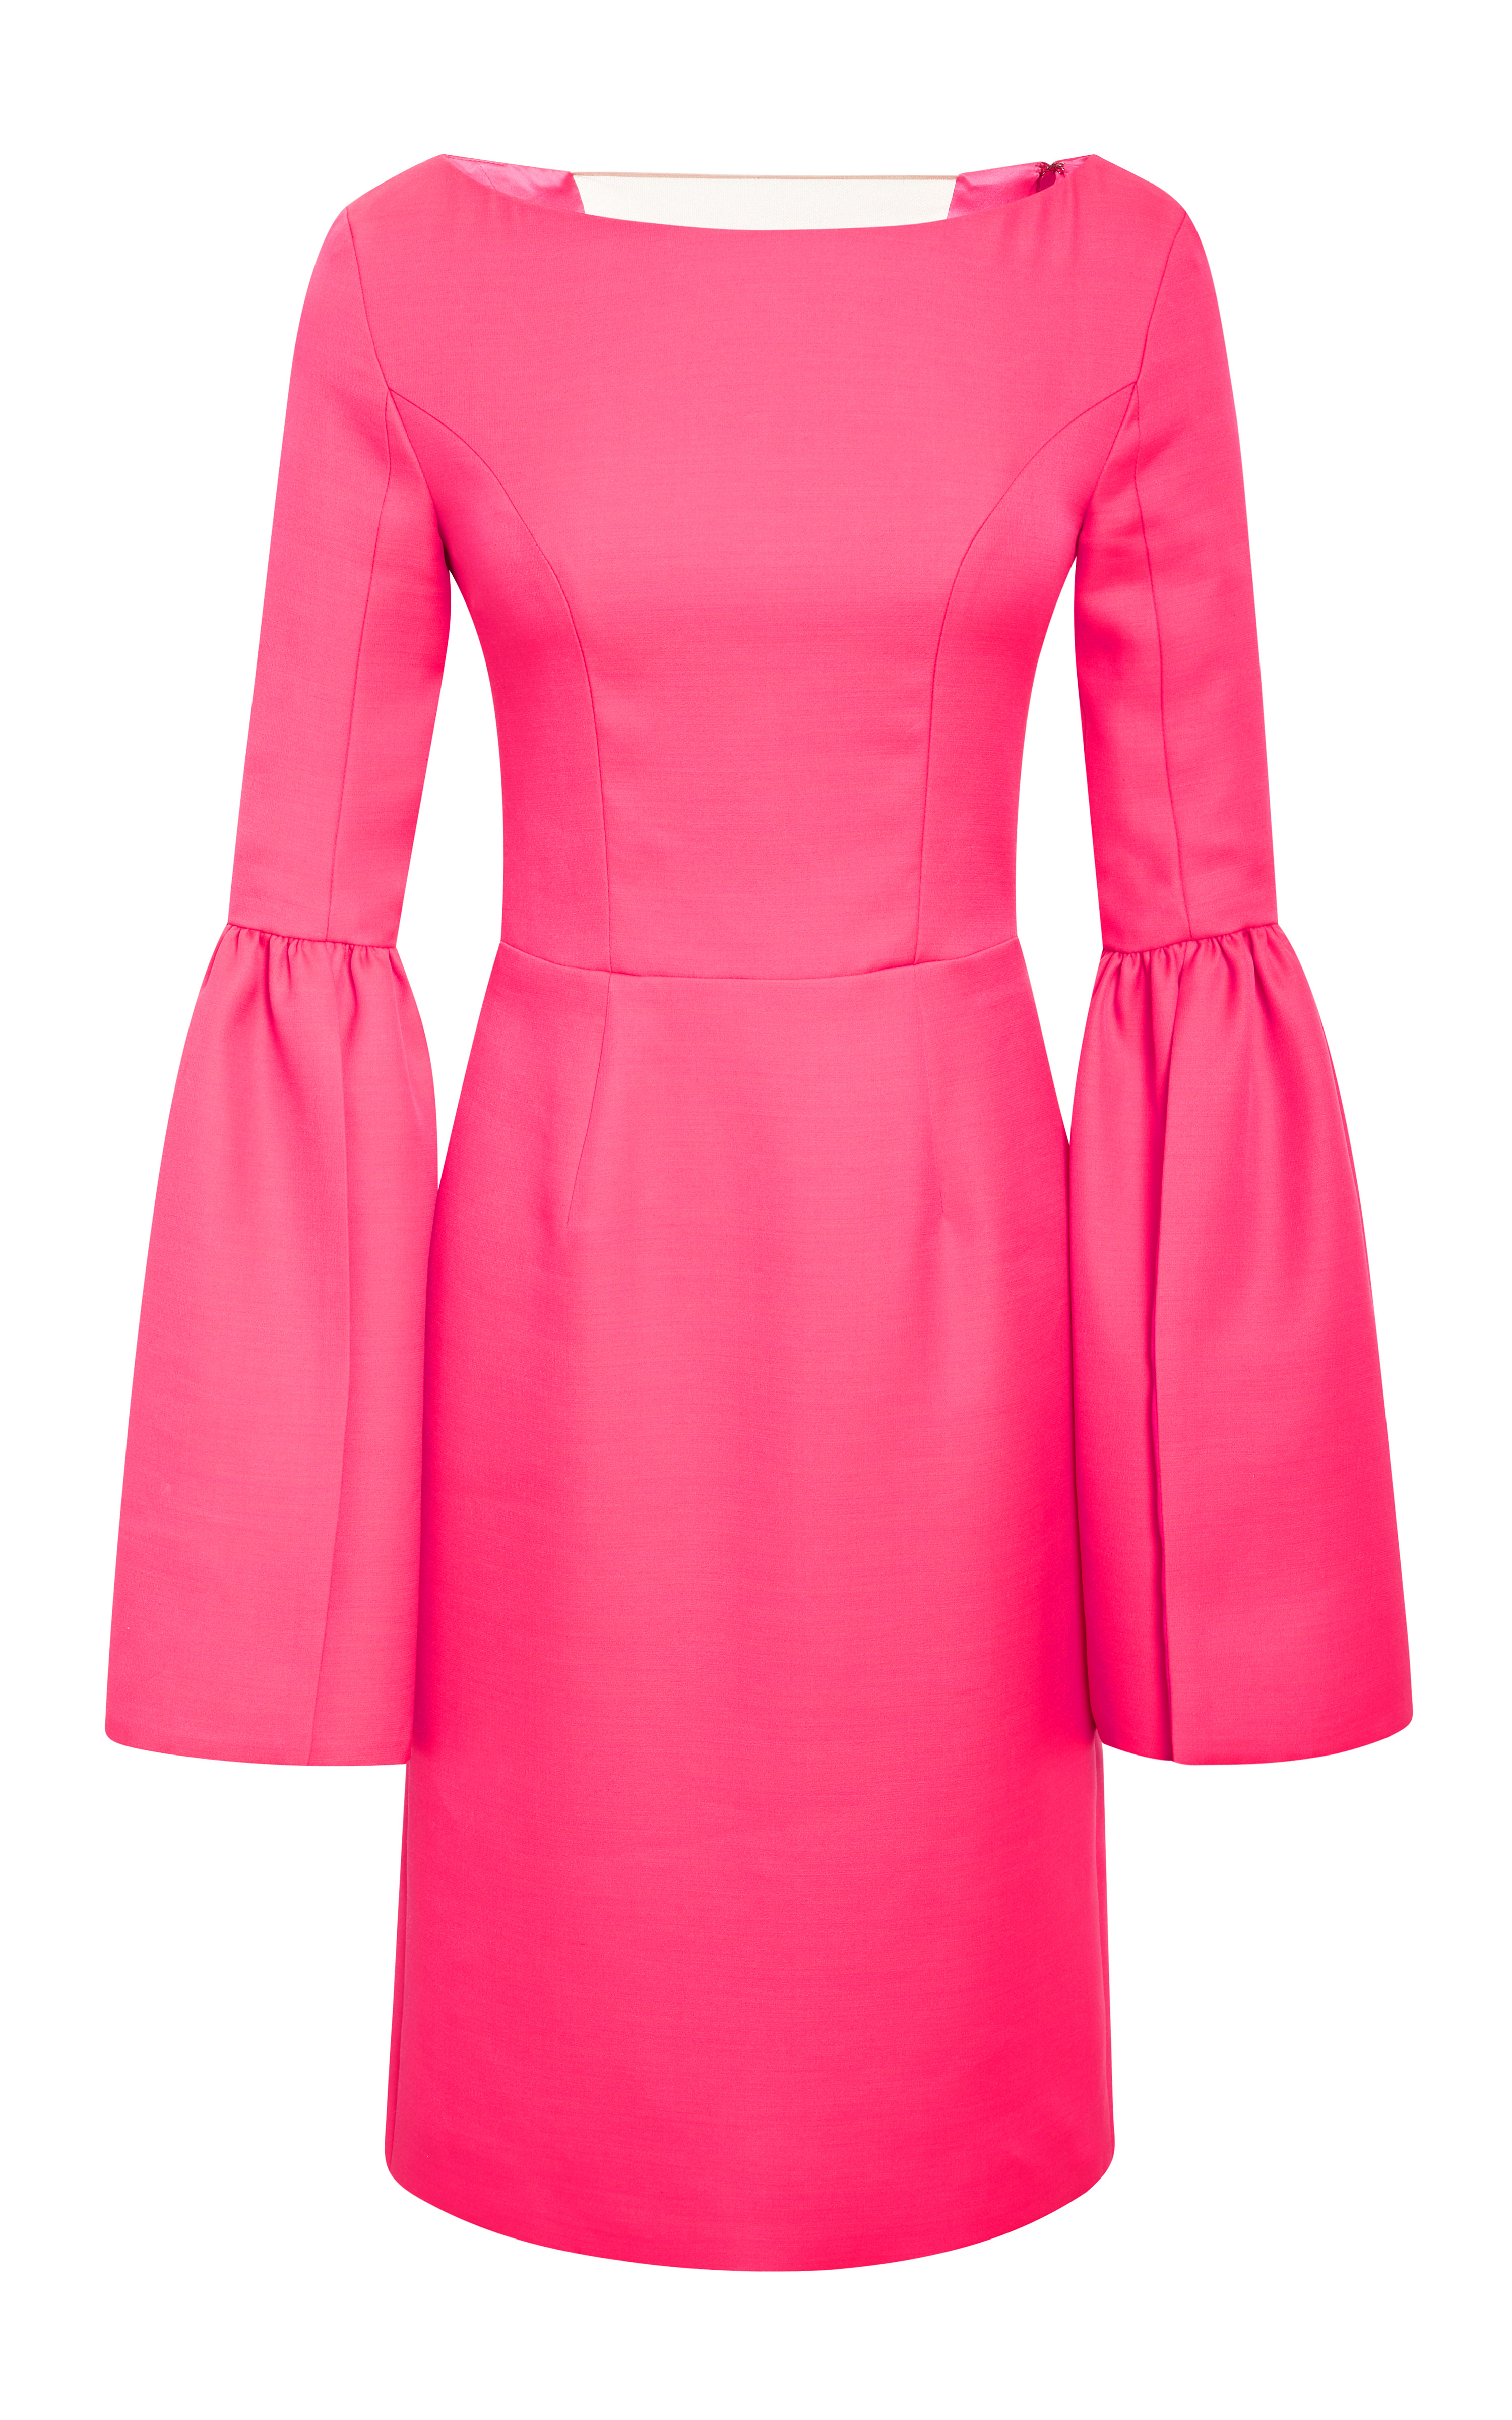 Honor Bell Sleeve Fitted Dress In Pink Neon Pink Lyst